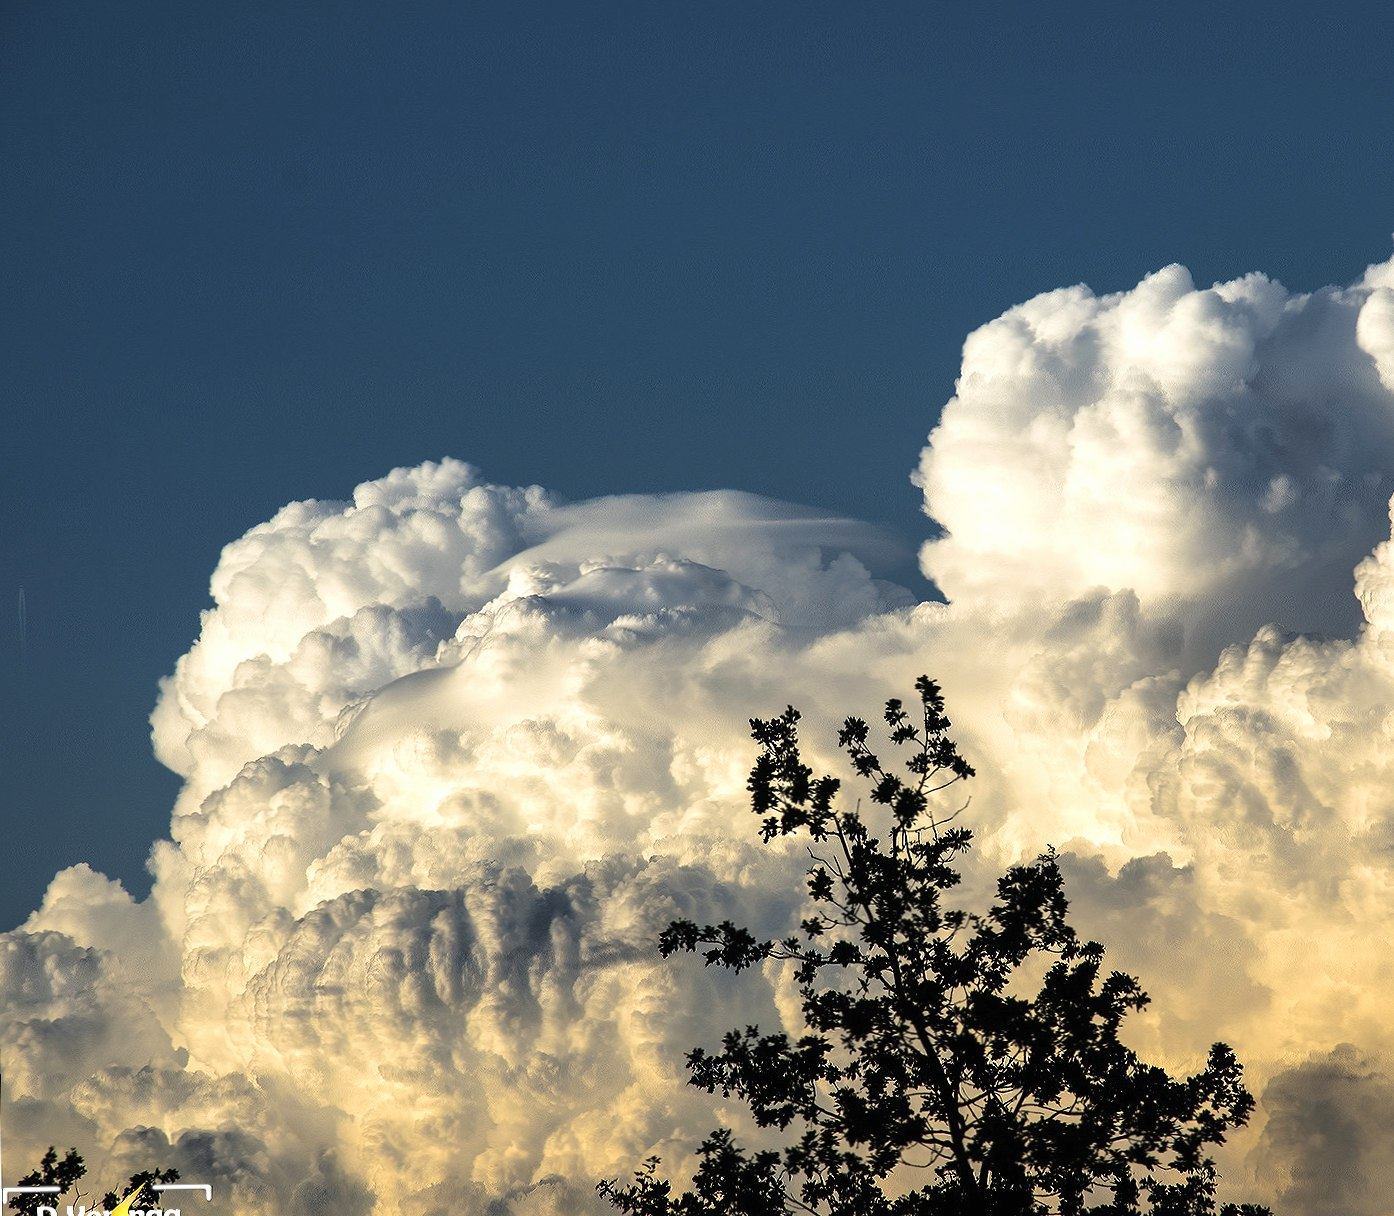 Pileus Clouds wallpapers HD quality